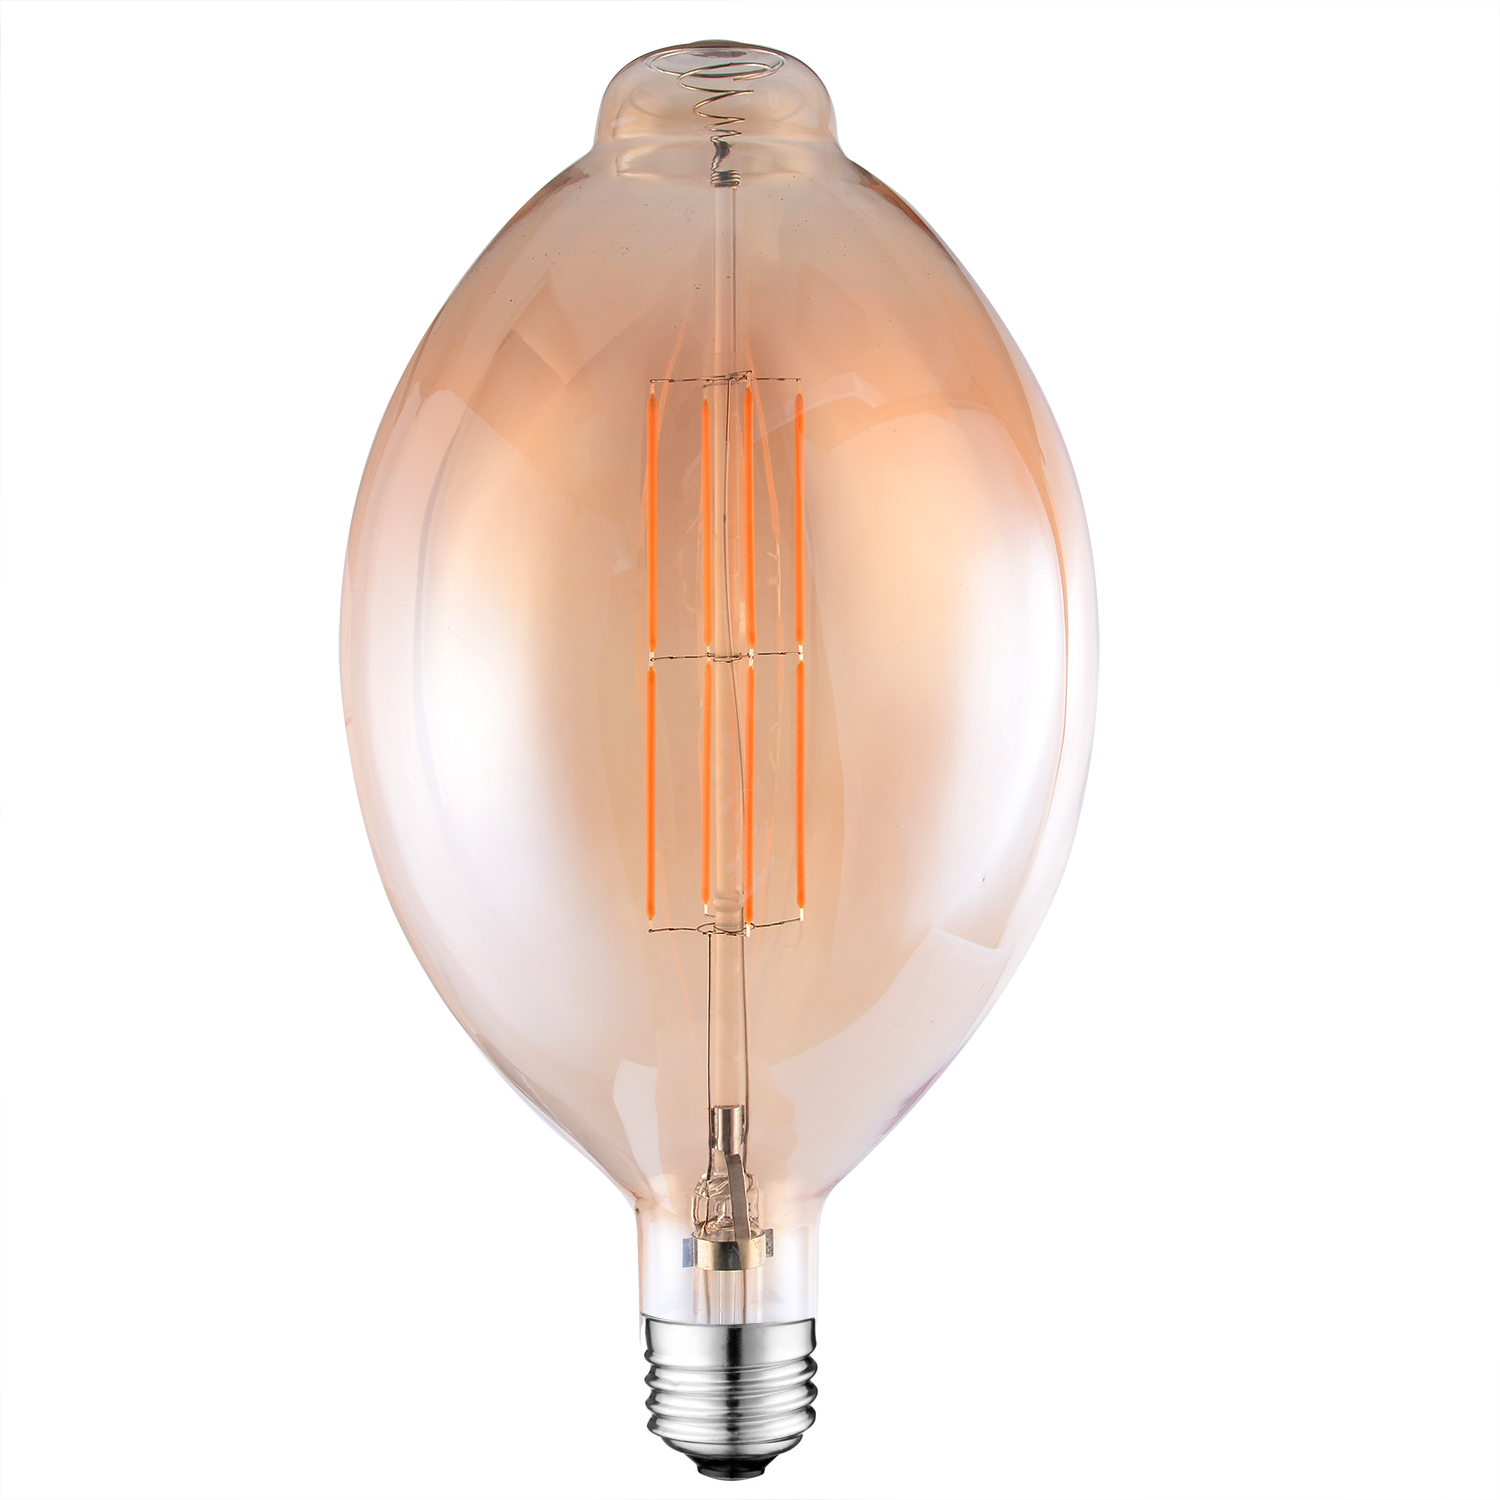 BT180 Unique Designer decorative LED Edison light bulbs